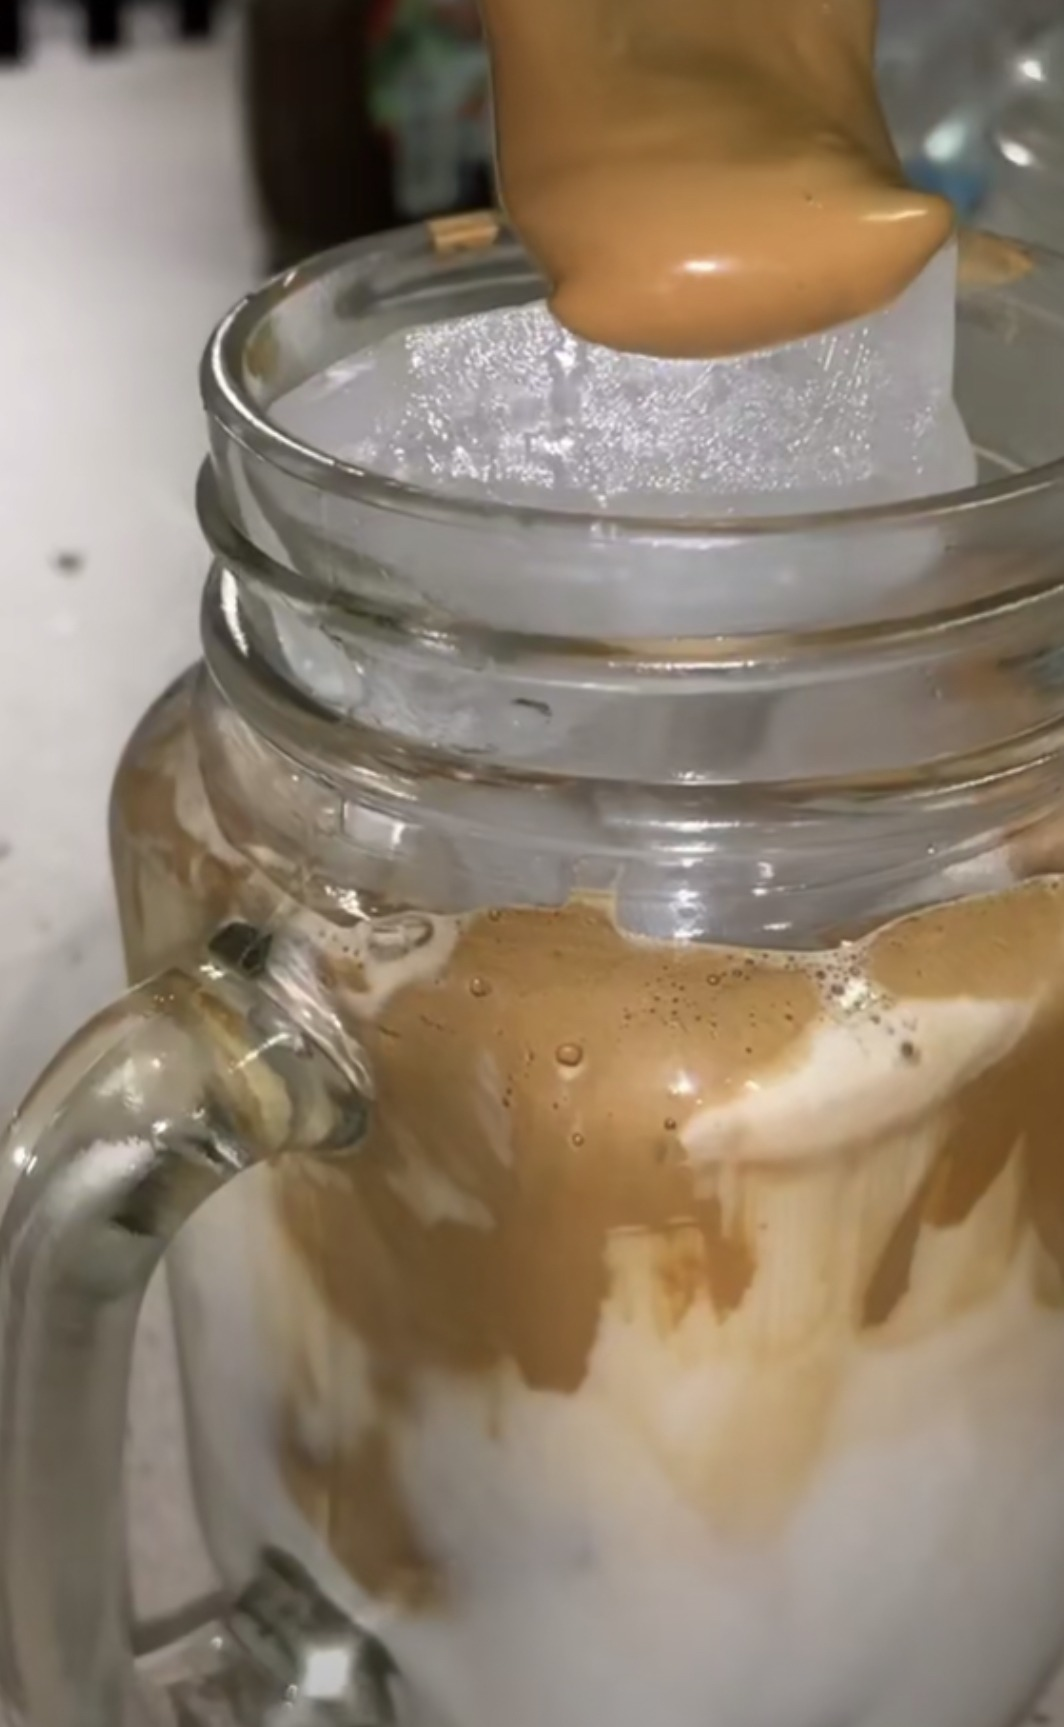 This Whipped Coffee Drink Is Trending On TikTok